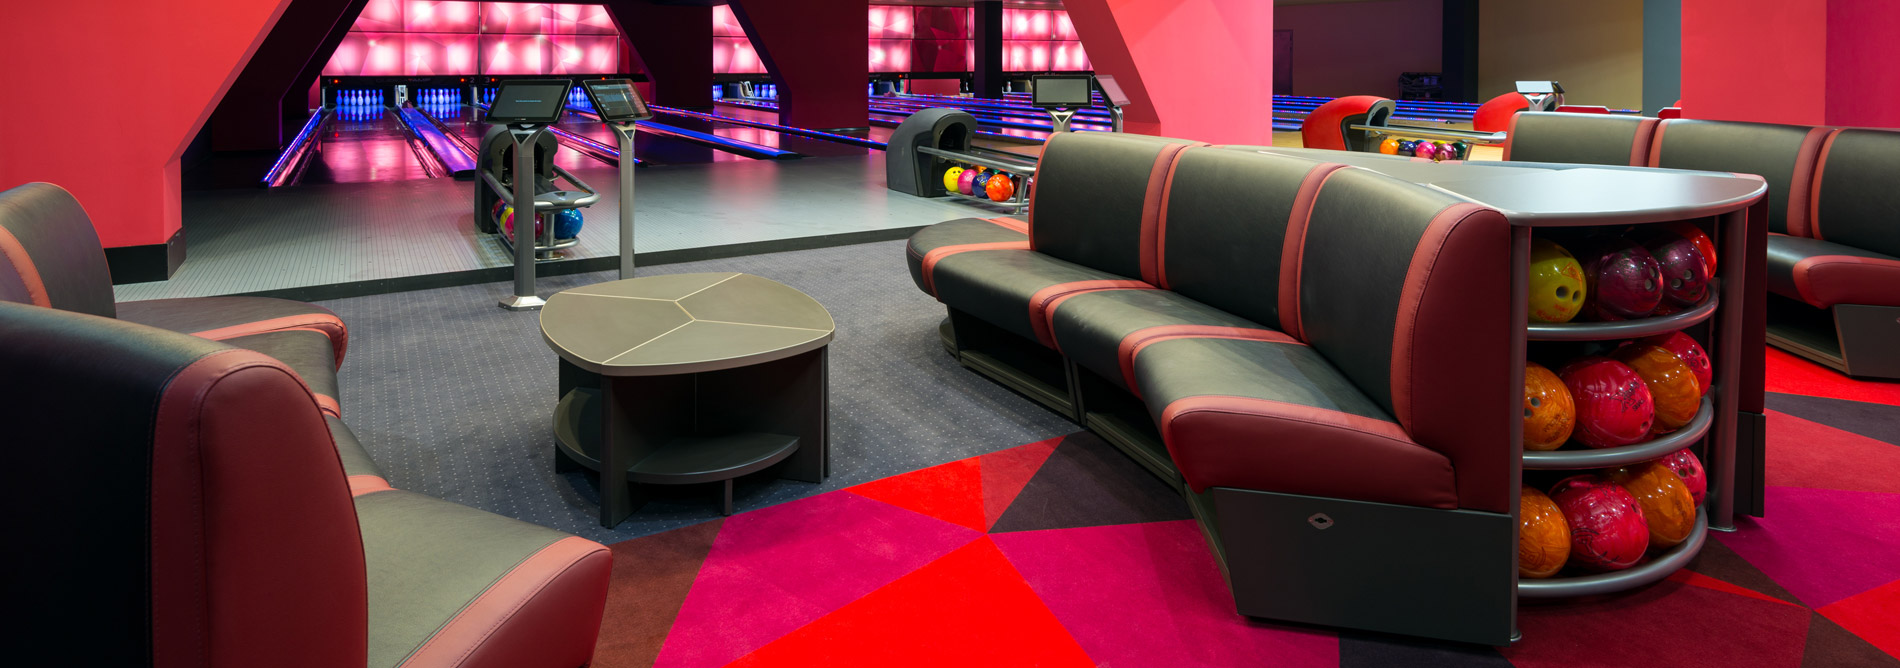 Bowling-QubicaAMF-furniture-design-elements-harmony-banner.jpg